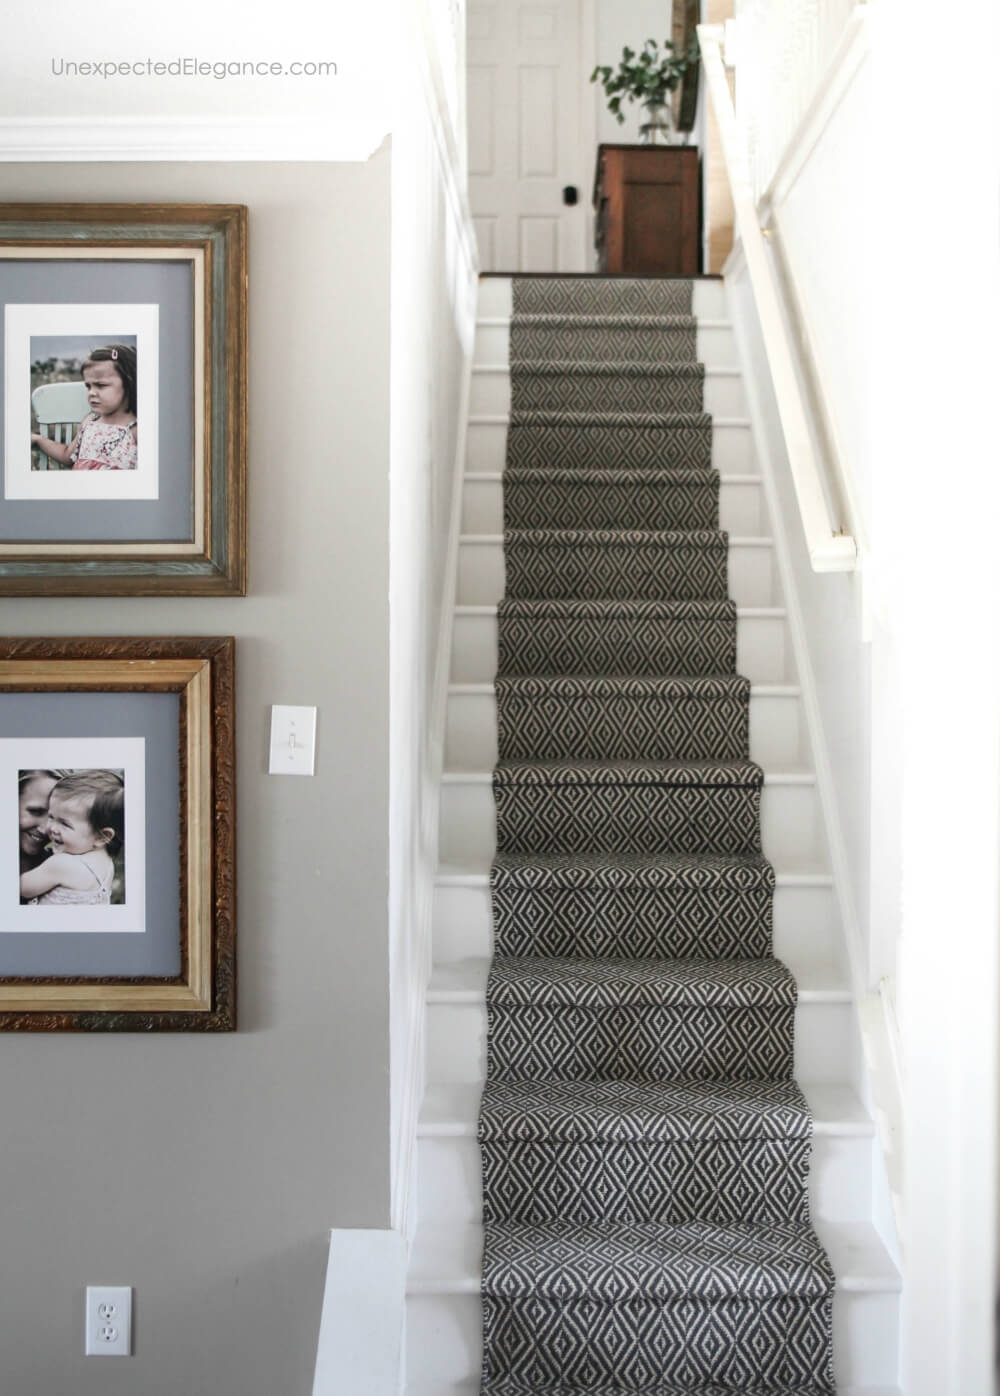 How To Replace Carpet With An Inexpensive Stair Runner For Around 100 | Cutting Carpet For Stairs | Carpet Tiles | Carpet Runner | Stair Tread | Wooden Stairs | Stair Runner